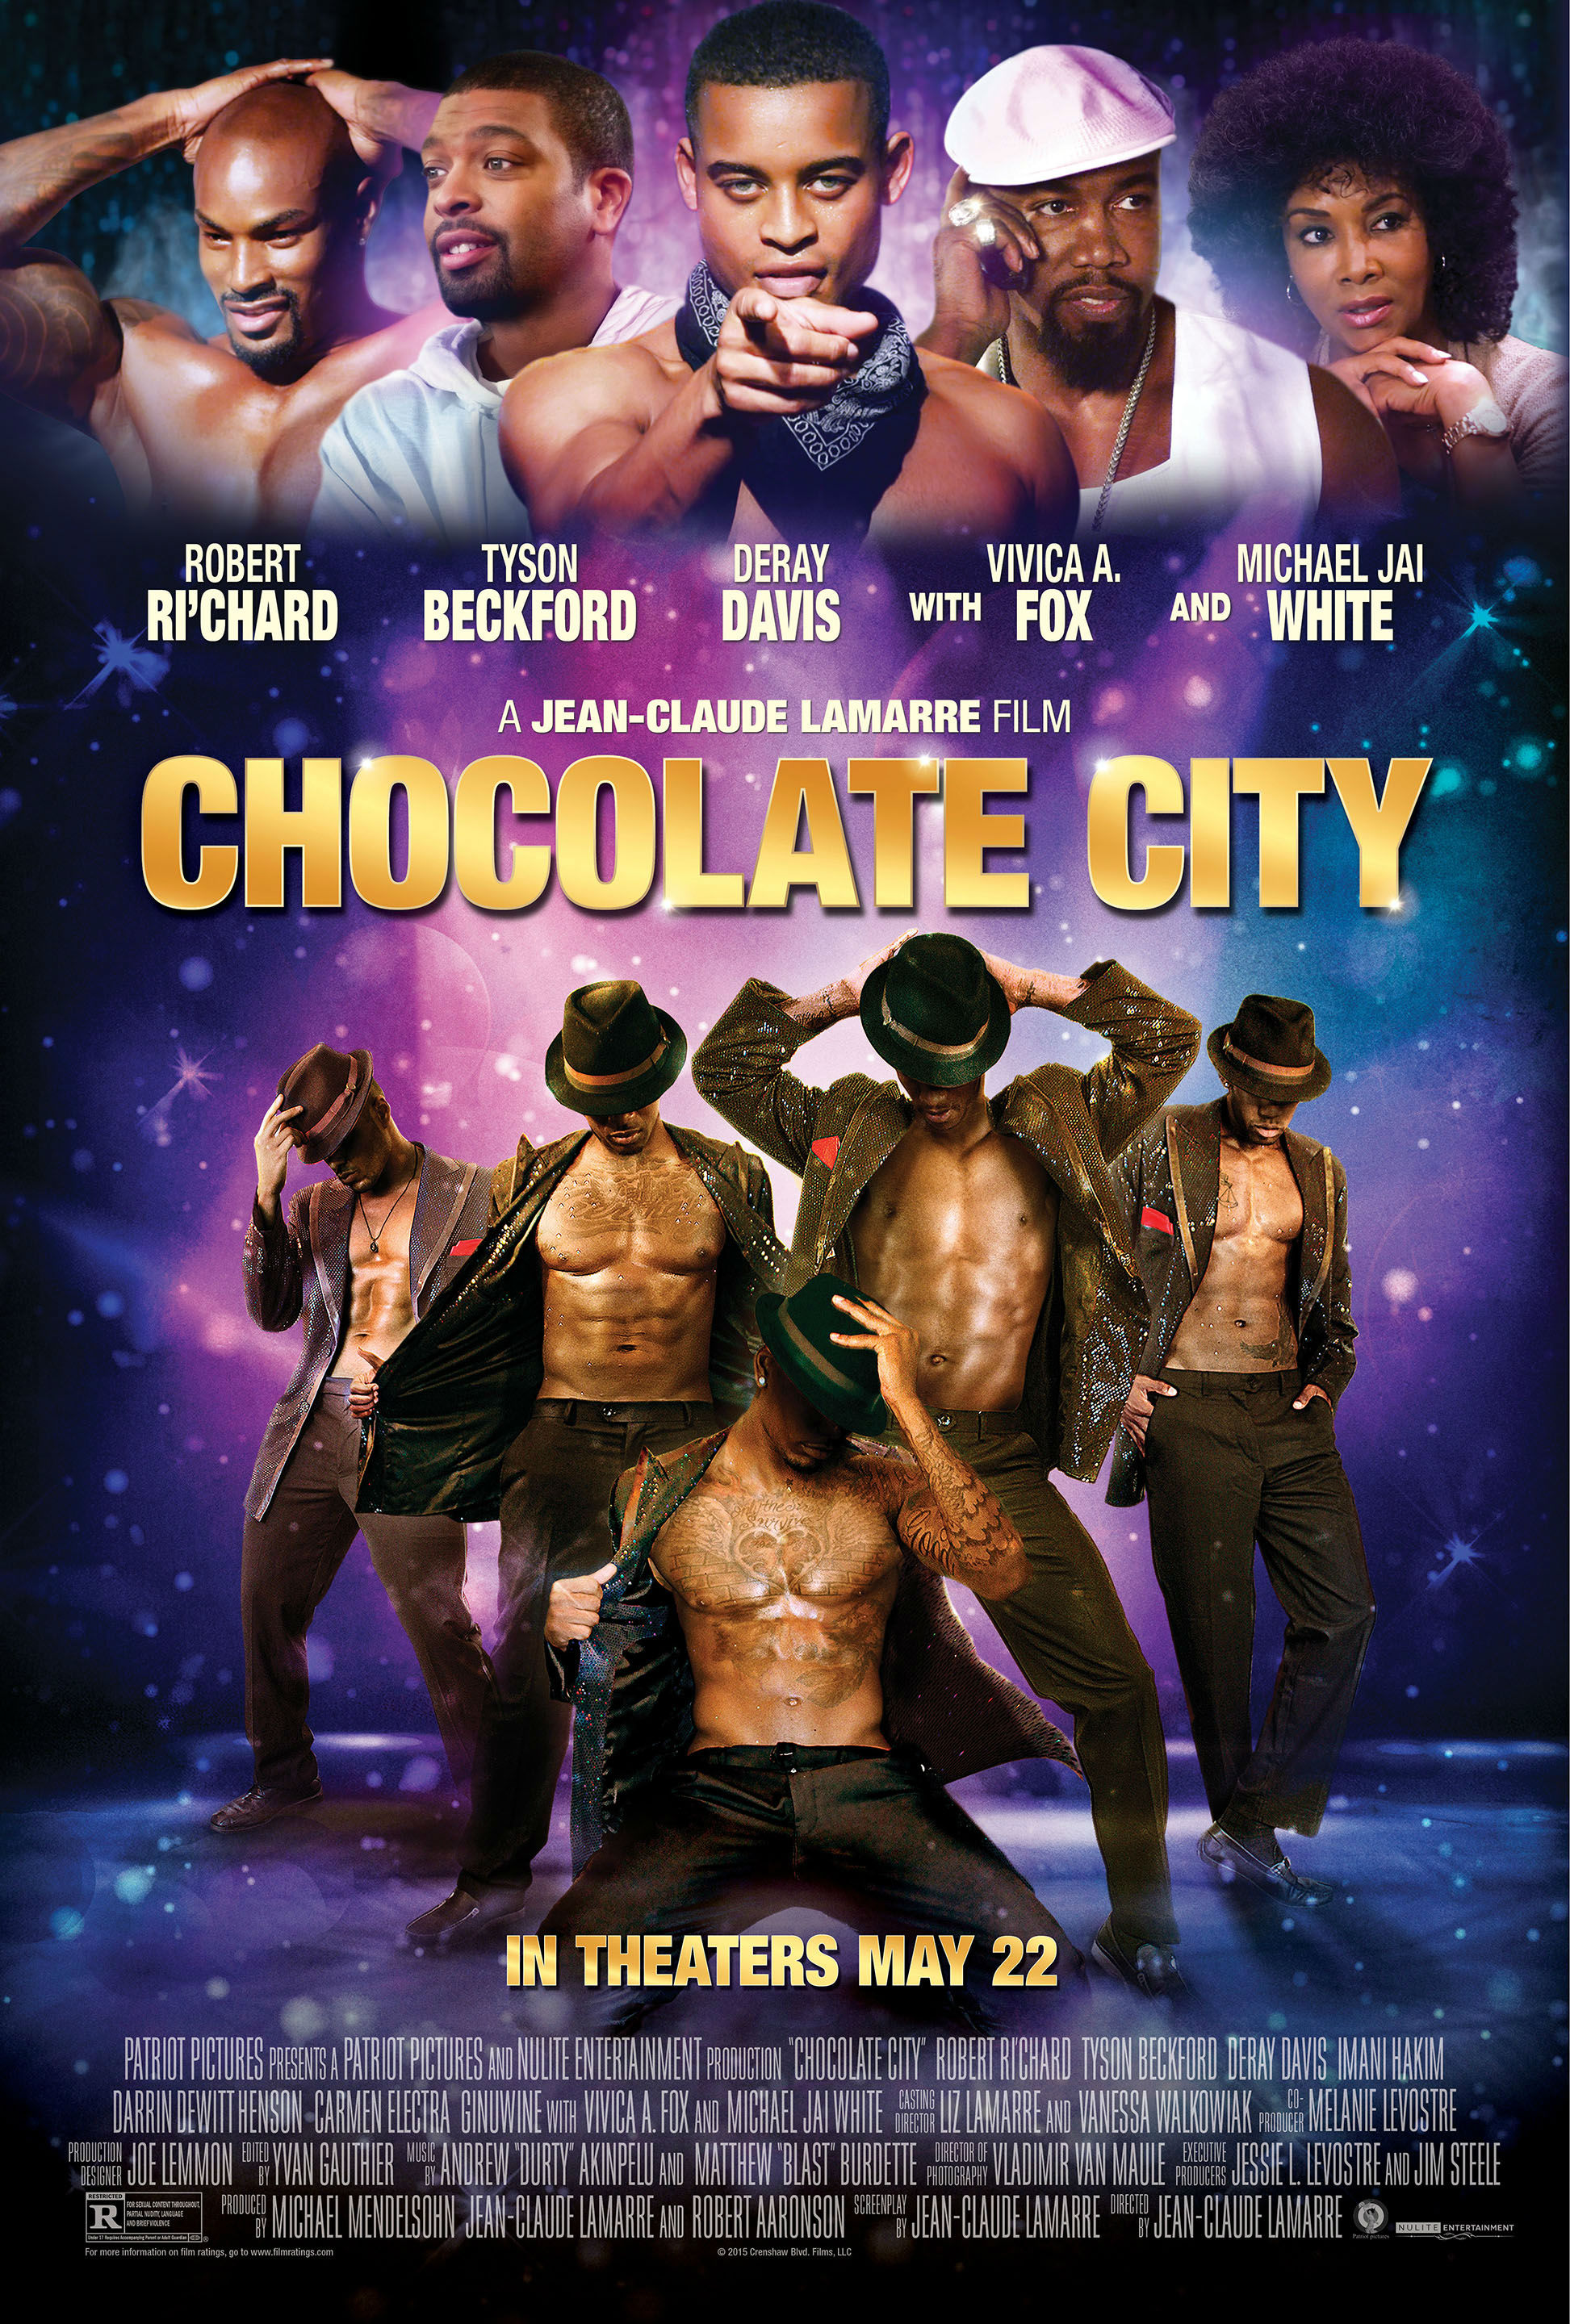 Watch Trailer To Jean-Claude LaMarre's Chocolate City - blackfilm ...